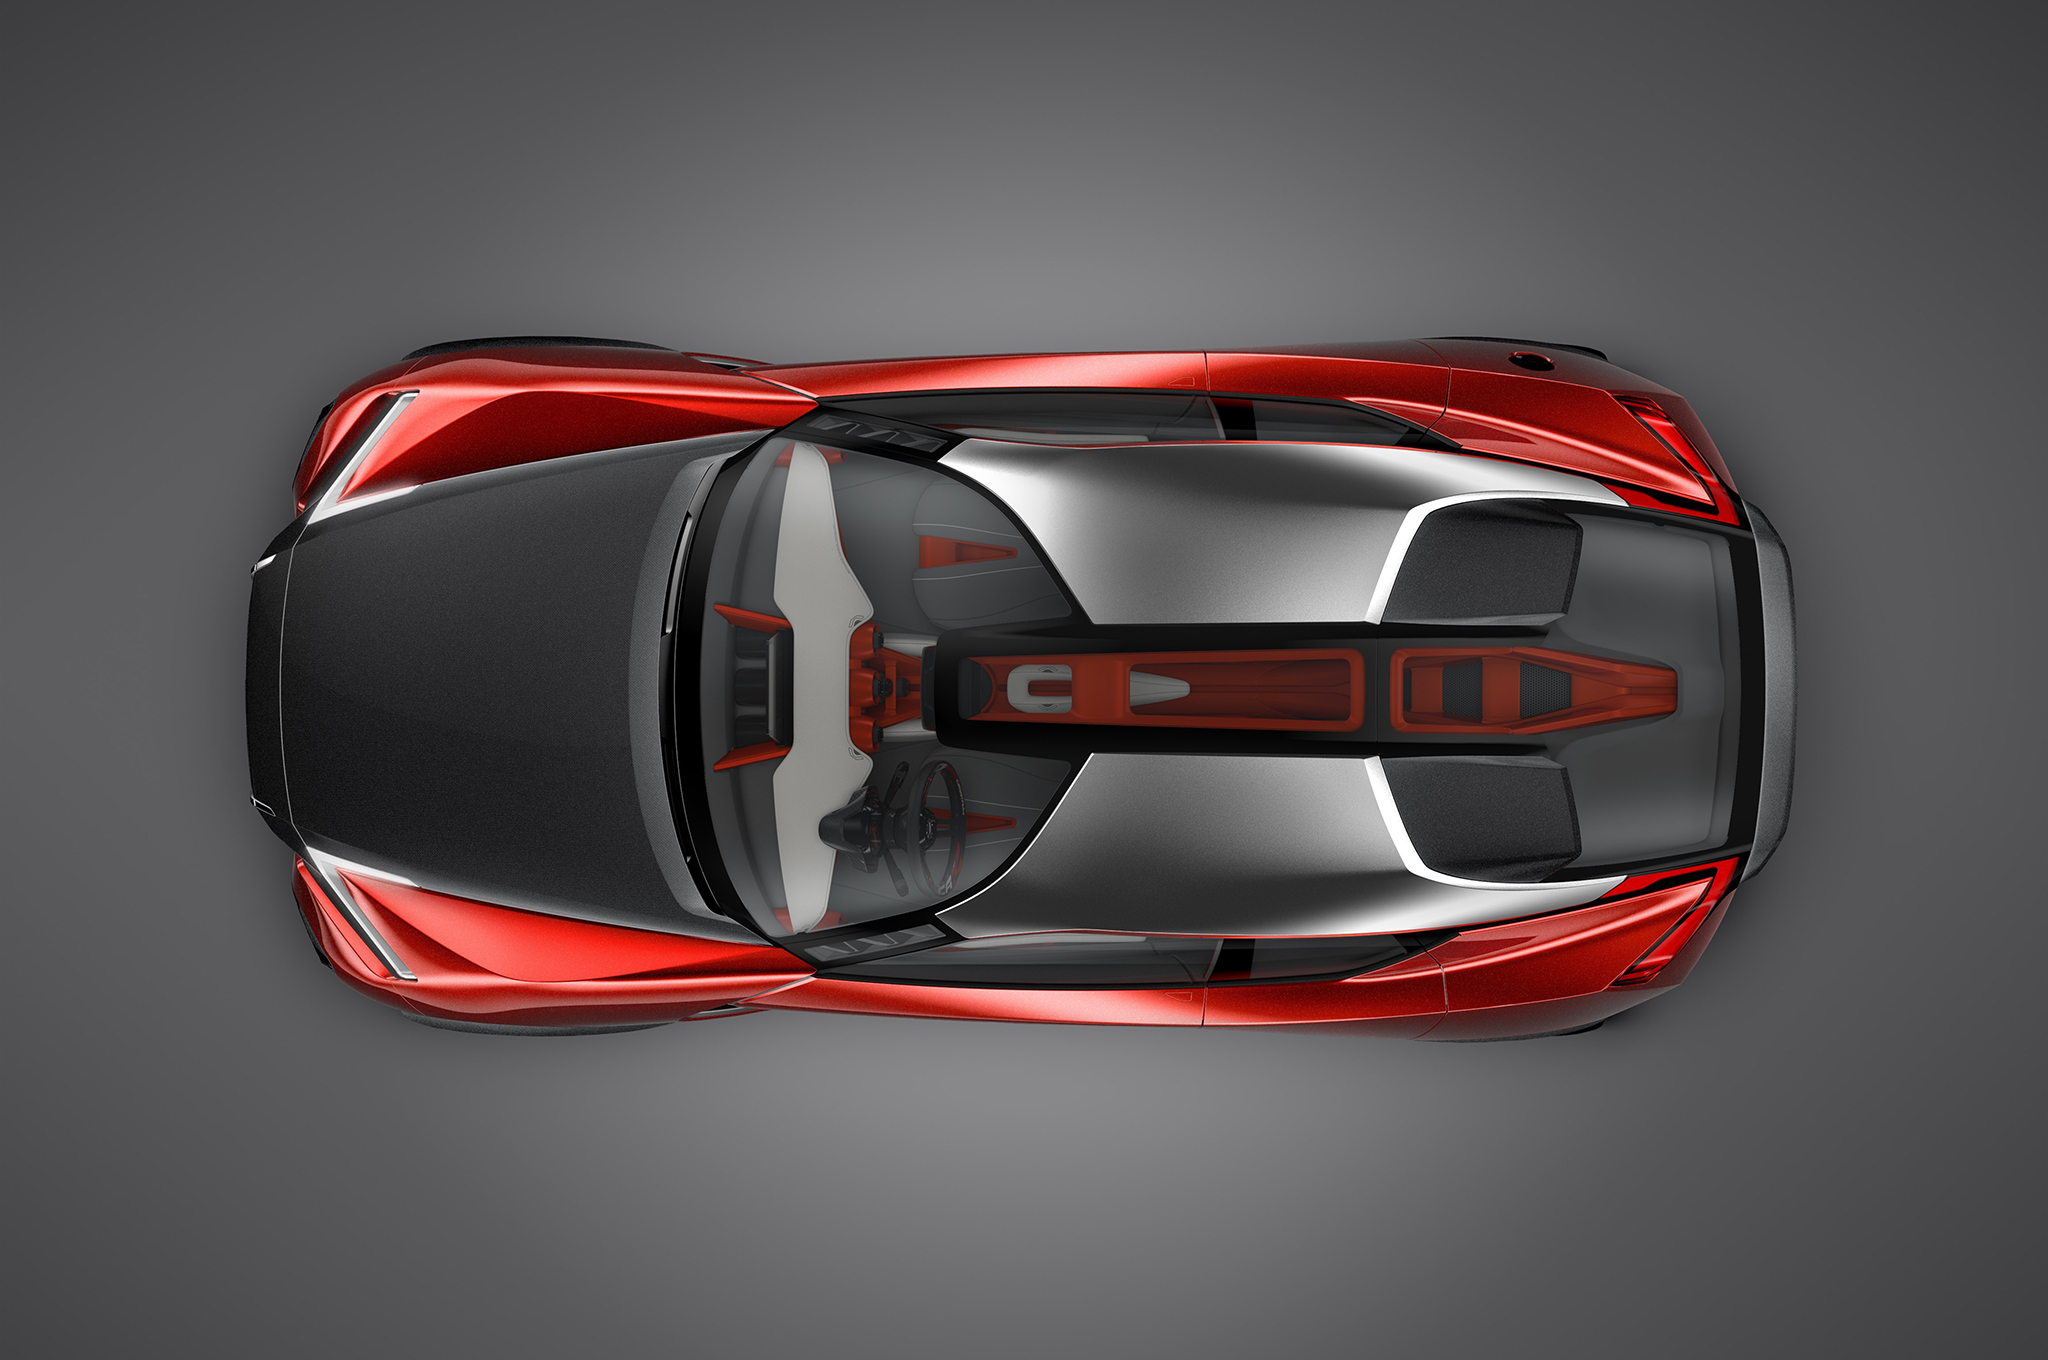 nissan-gripz-concept-top-from-above